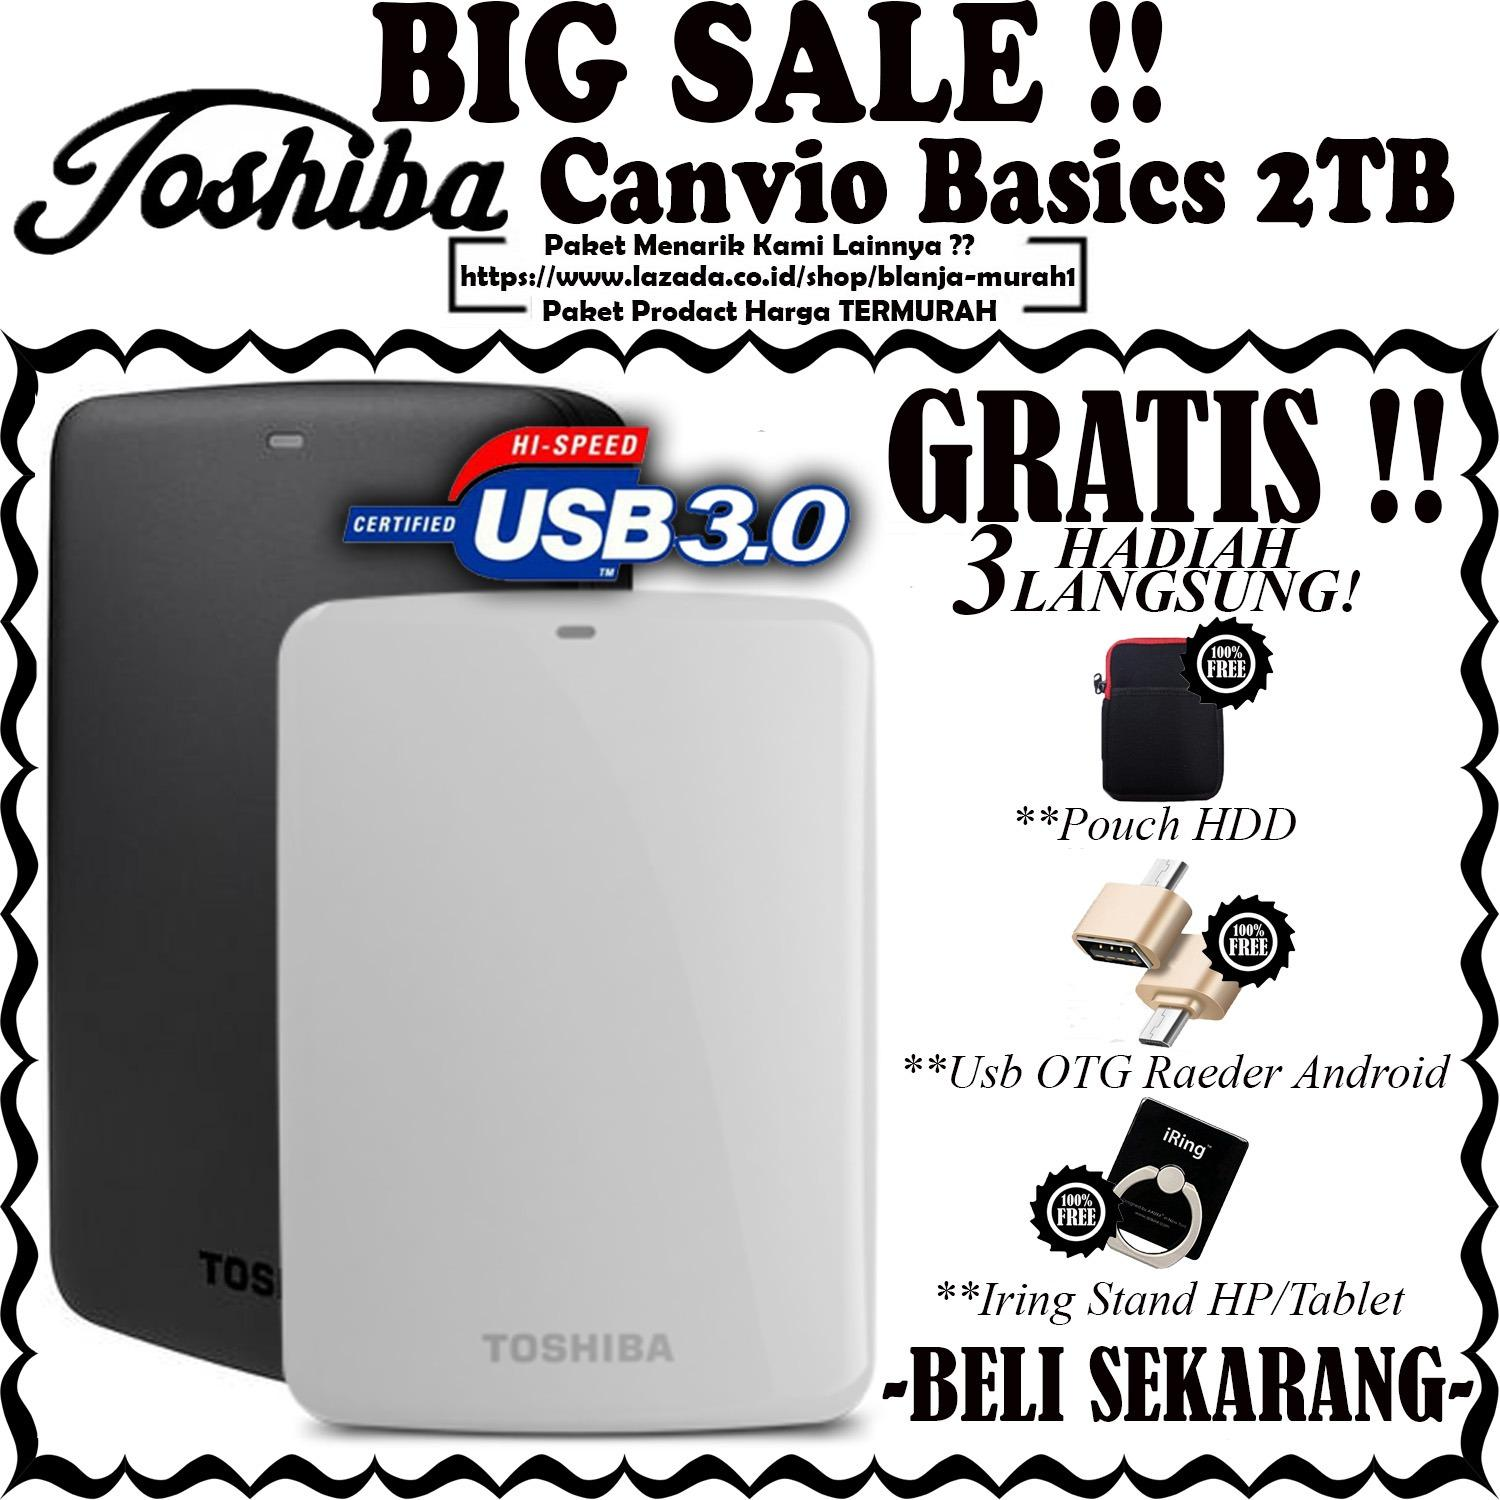 Toshiba Canvio Basics 2TB - HDD / HD / Hardisk Eksternal - GRATIS Pouch HDD Ext + Usb OTG Reader Android & Iring Stand HP/Tablet